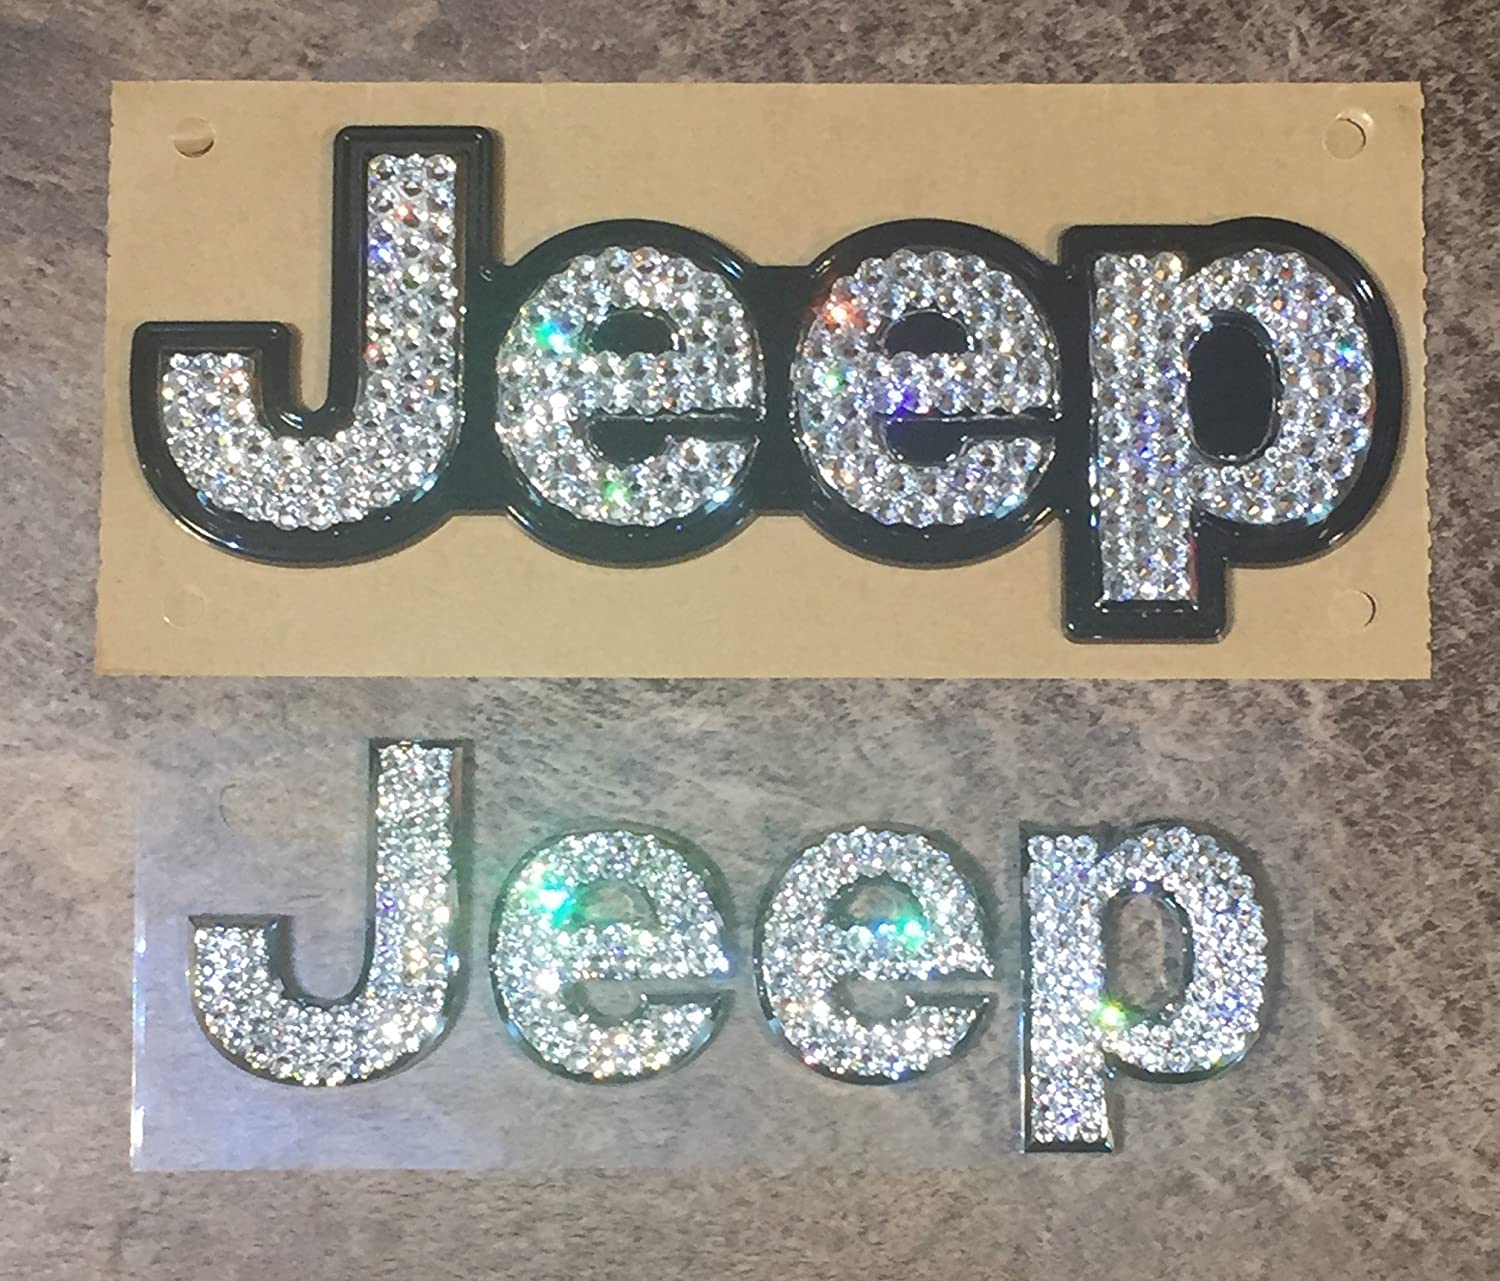 Jeep Chrome Front and/or Rear Emblems made with Clear Swarovski Crystals - Car Jewelry